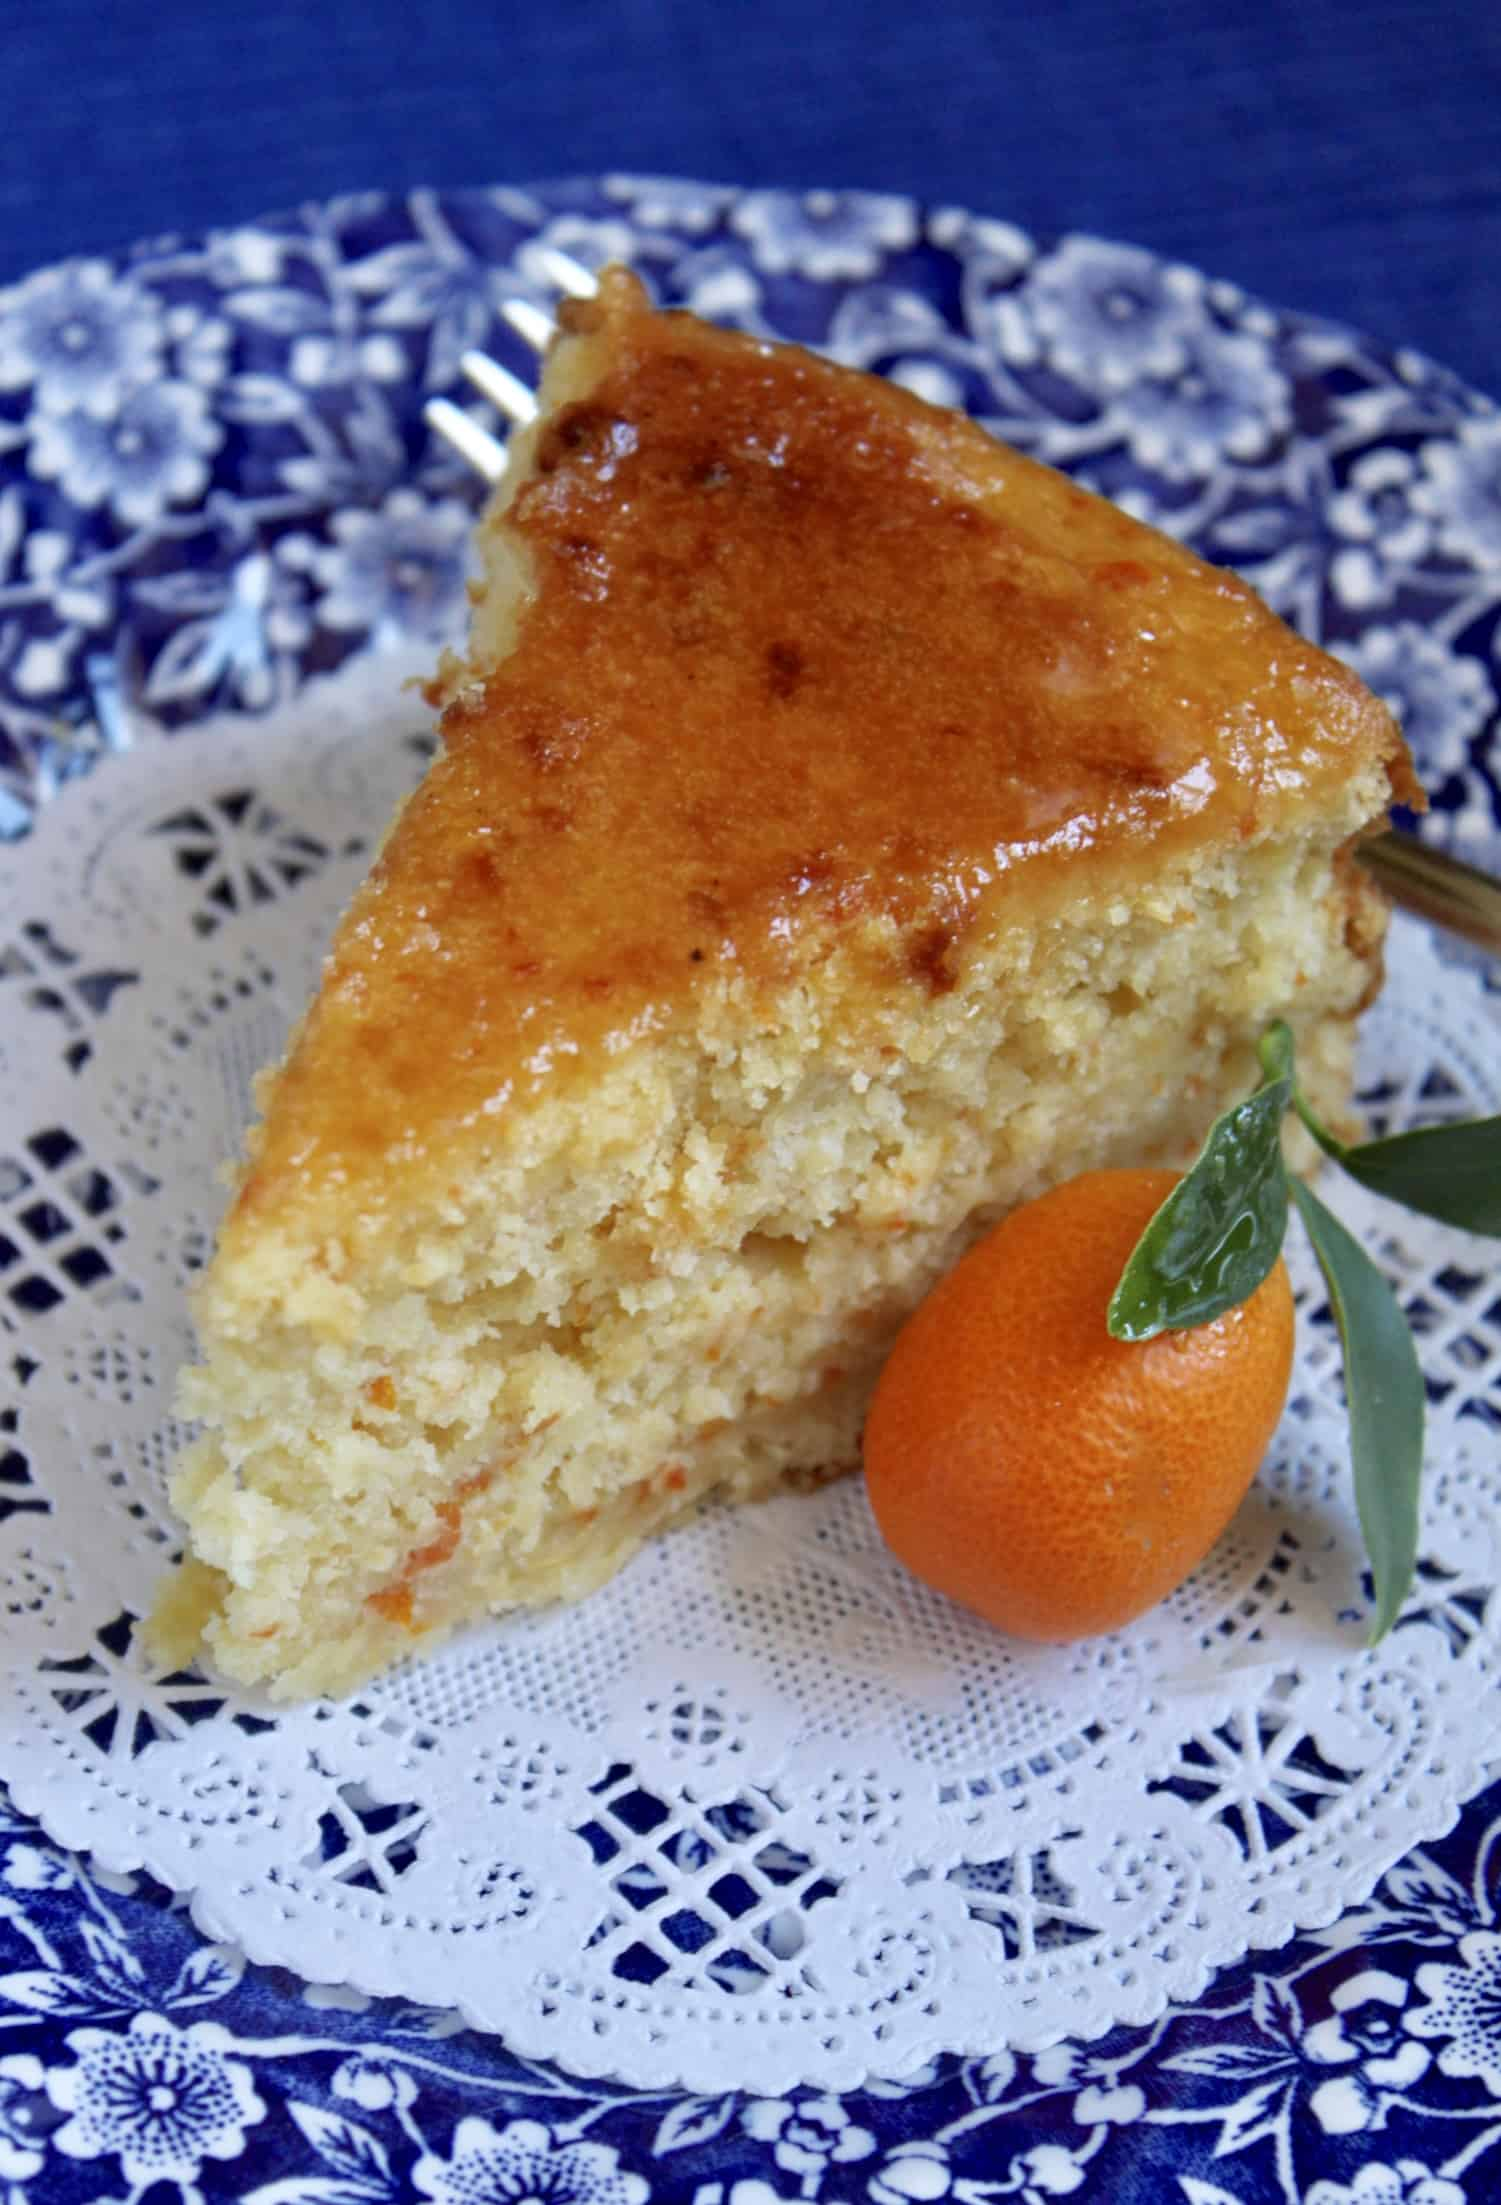 kumquat and cake on a plate